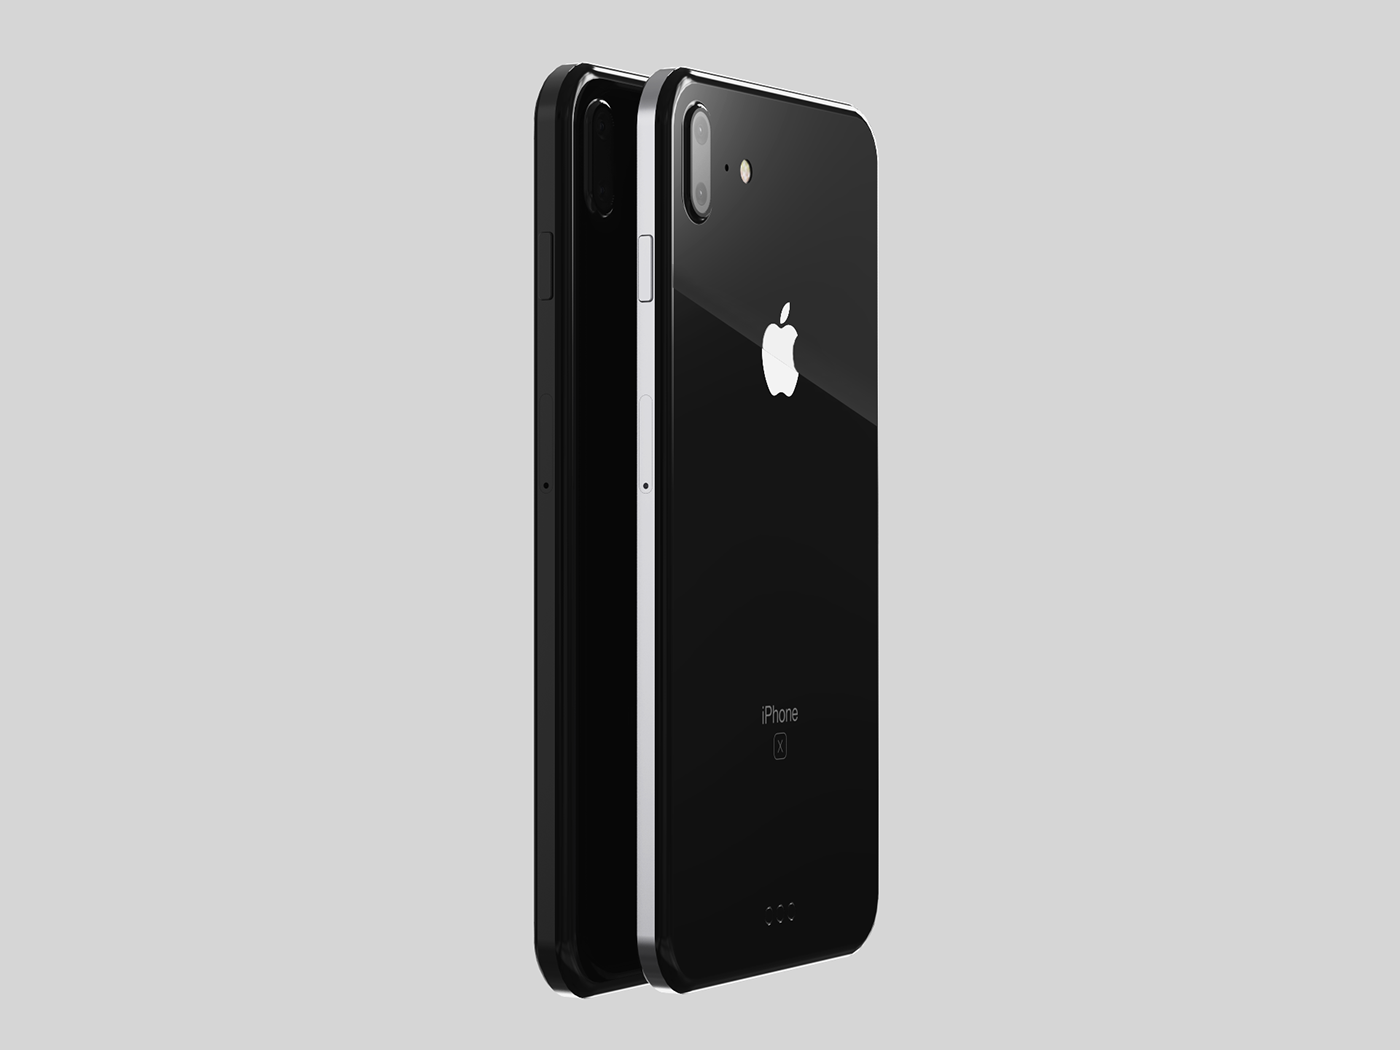 iphone x concept updated 2017 on behance. Black Bedroom Furniture Sets. Home Design Ideas